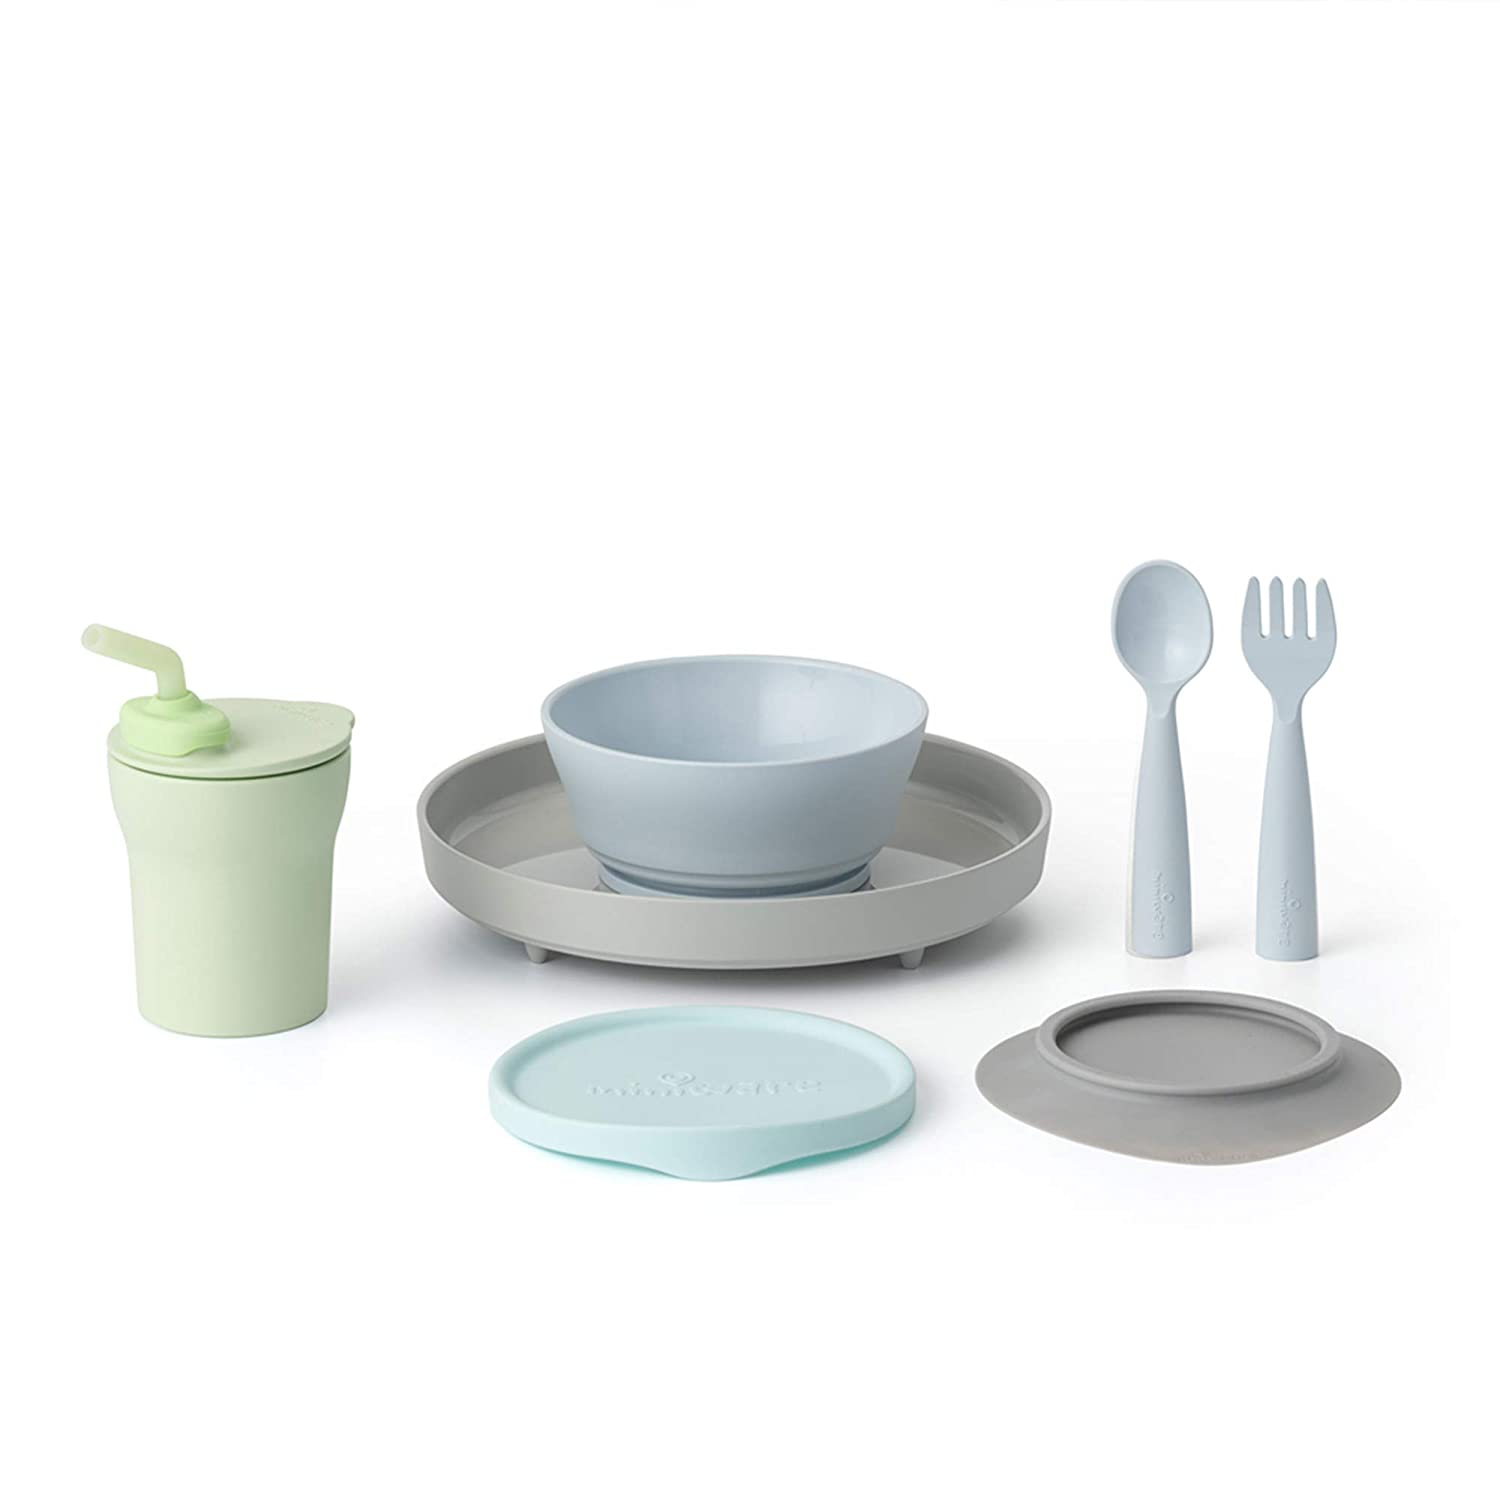 Miniware Little Foodie Ranking Many popular brands TOP6 Set with My Sandwich Bowl Cereal Plate